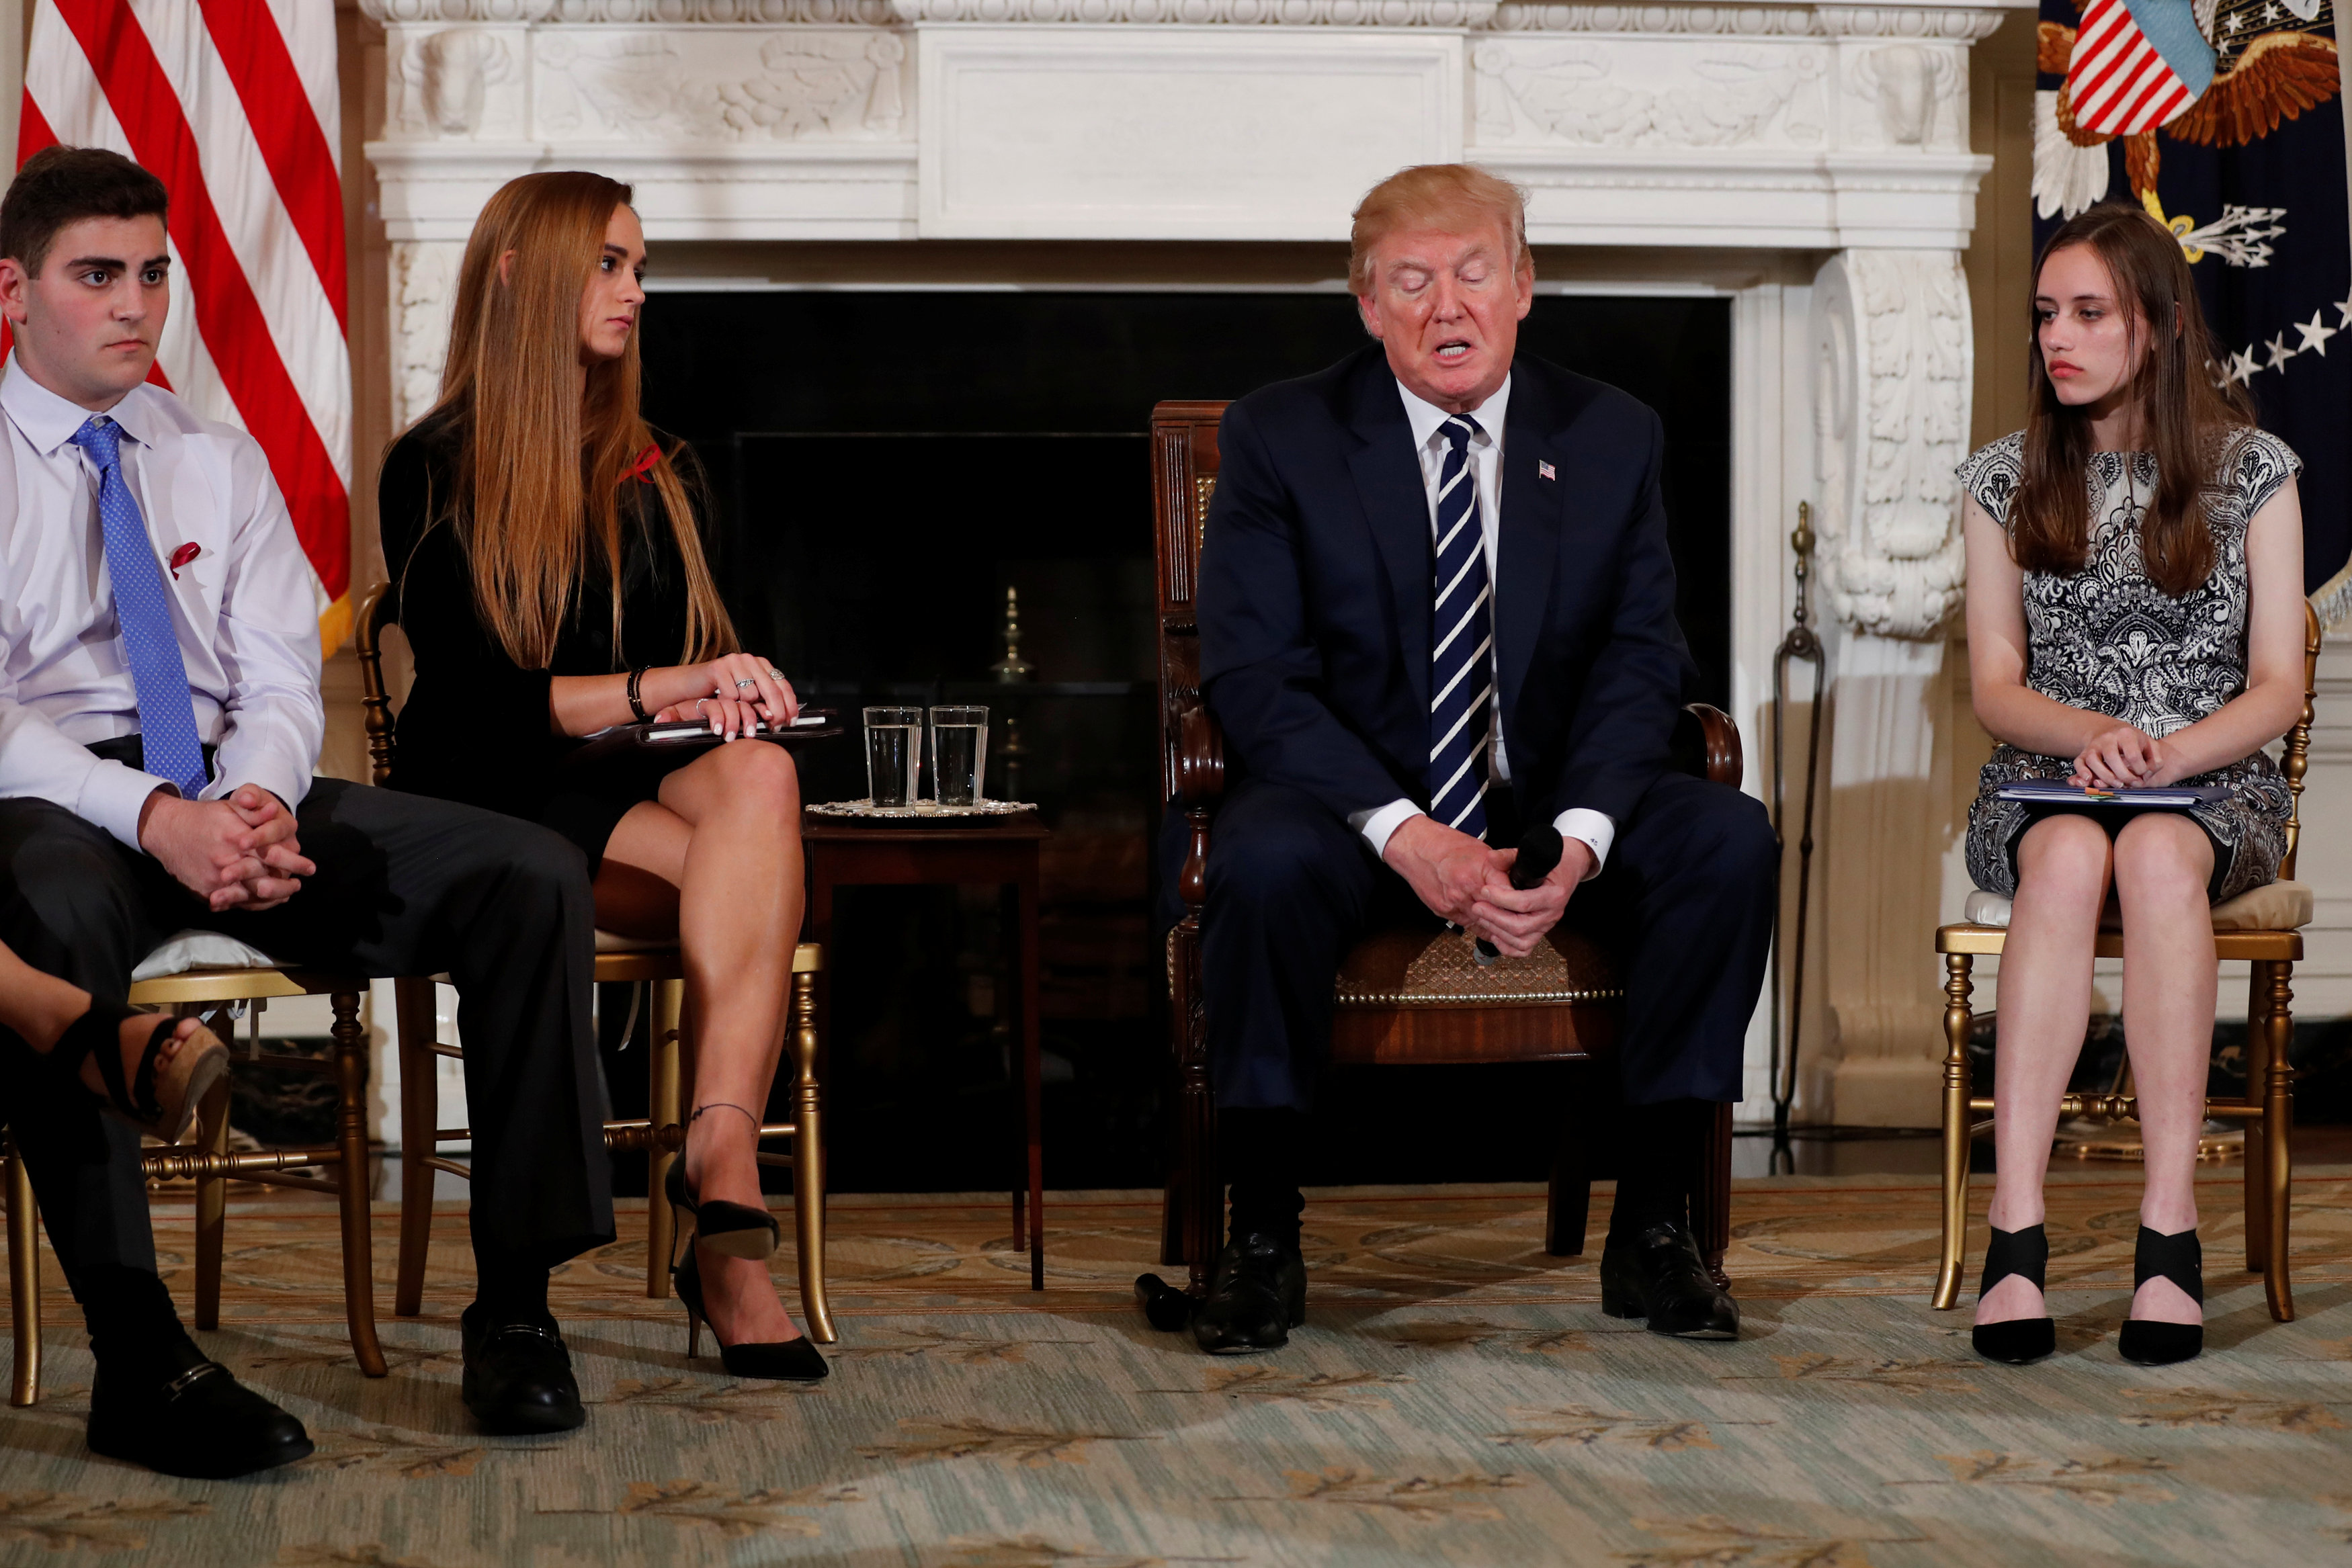 US President Donald Trump, seated with (from left) Jonathan Blank, Julia Cordover and Carson Abt at the White House in Washington, February 21, 2018. — Reuters pic